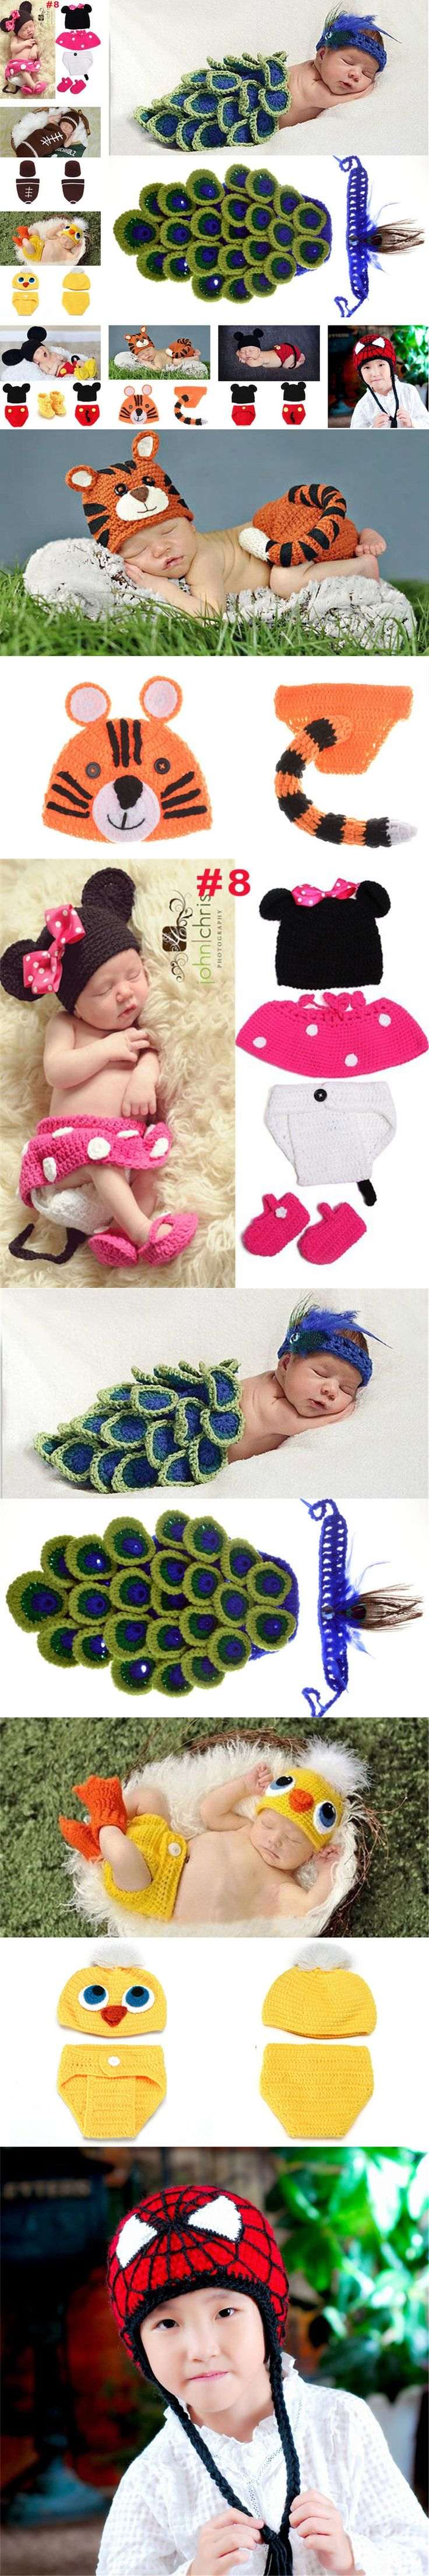 Peacock Design Baby Girl Photography Props Knitted Infant Newborn Baby Costume with Feather Headband 1set MZS-15015